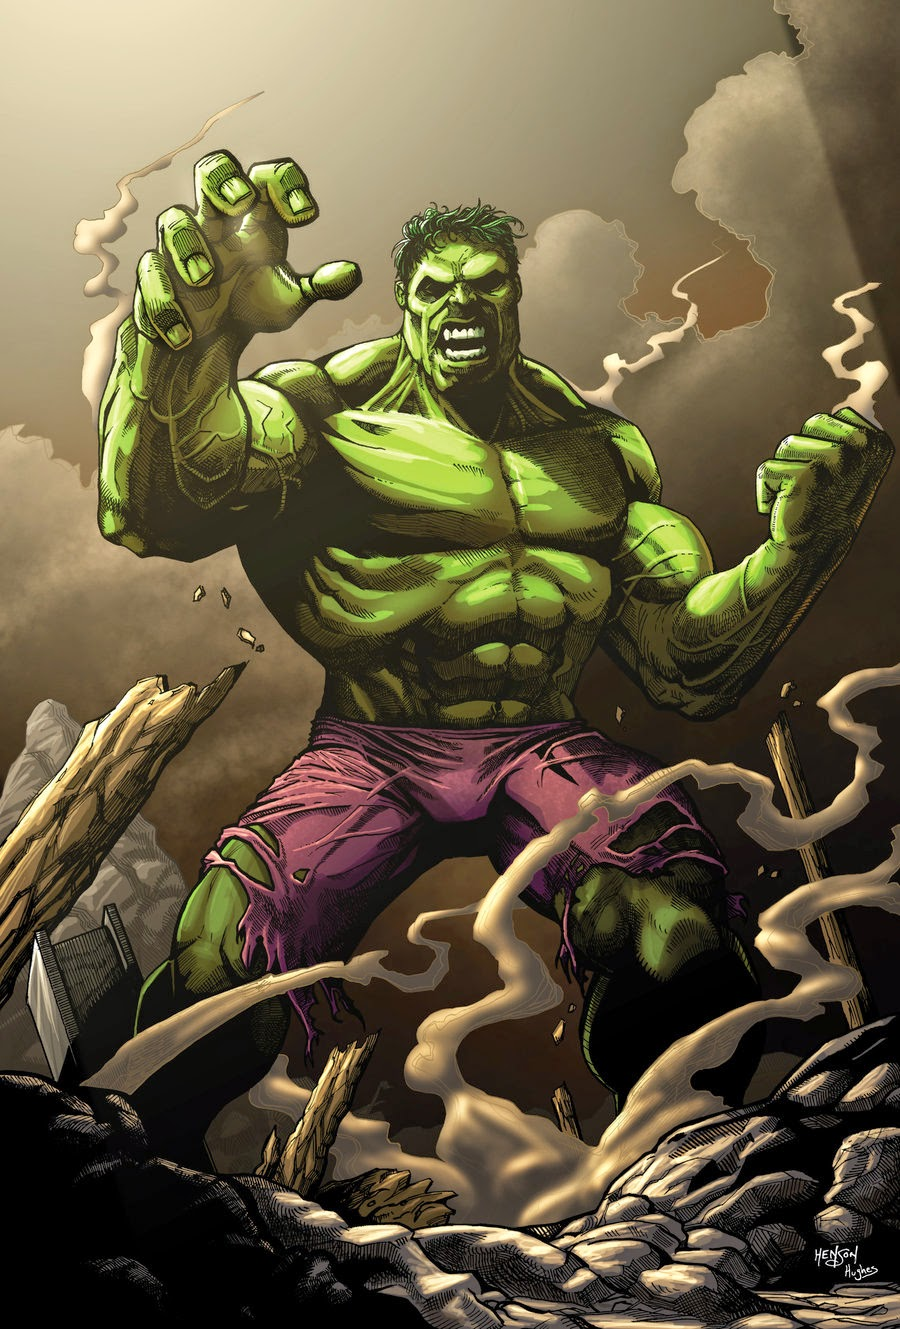 Marvel's The Hulk smashing